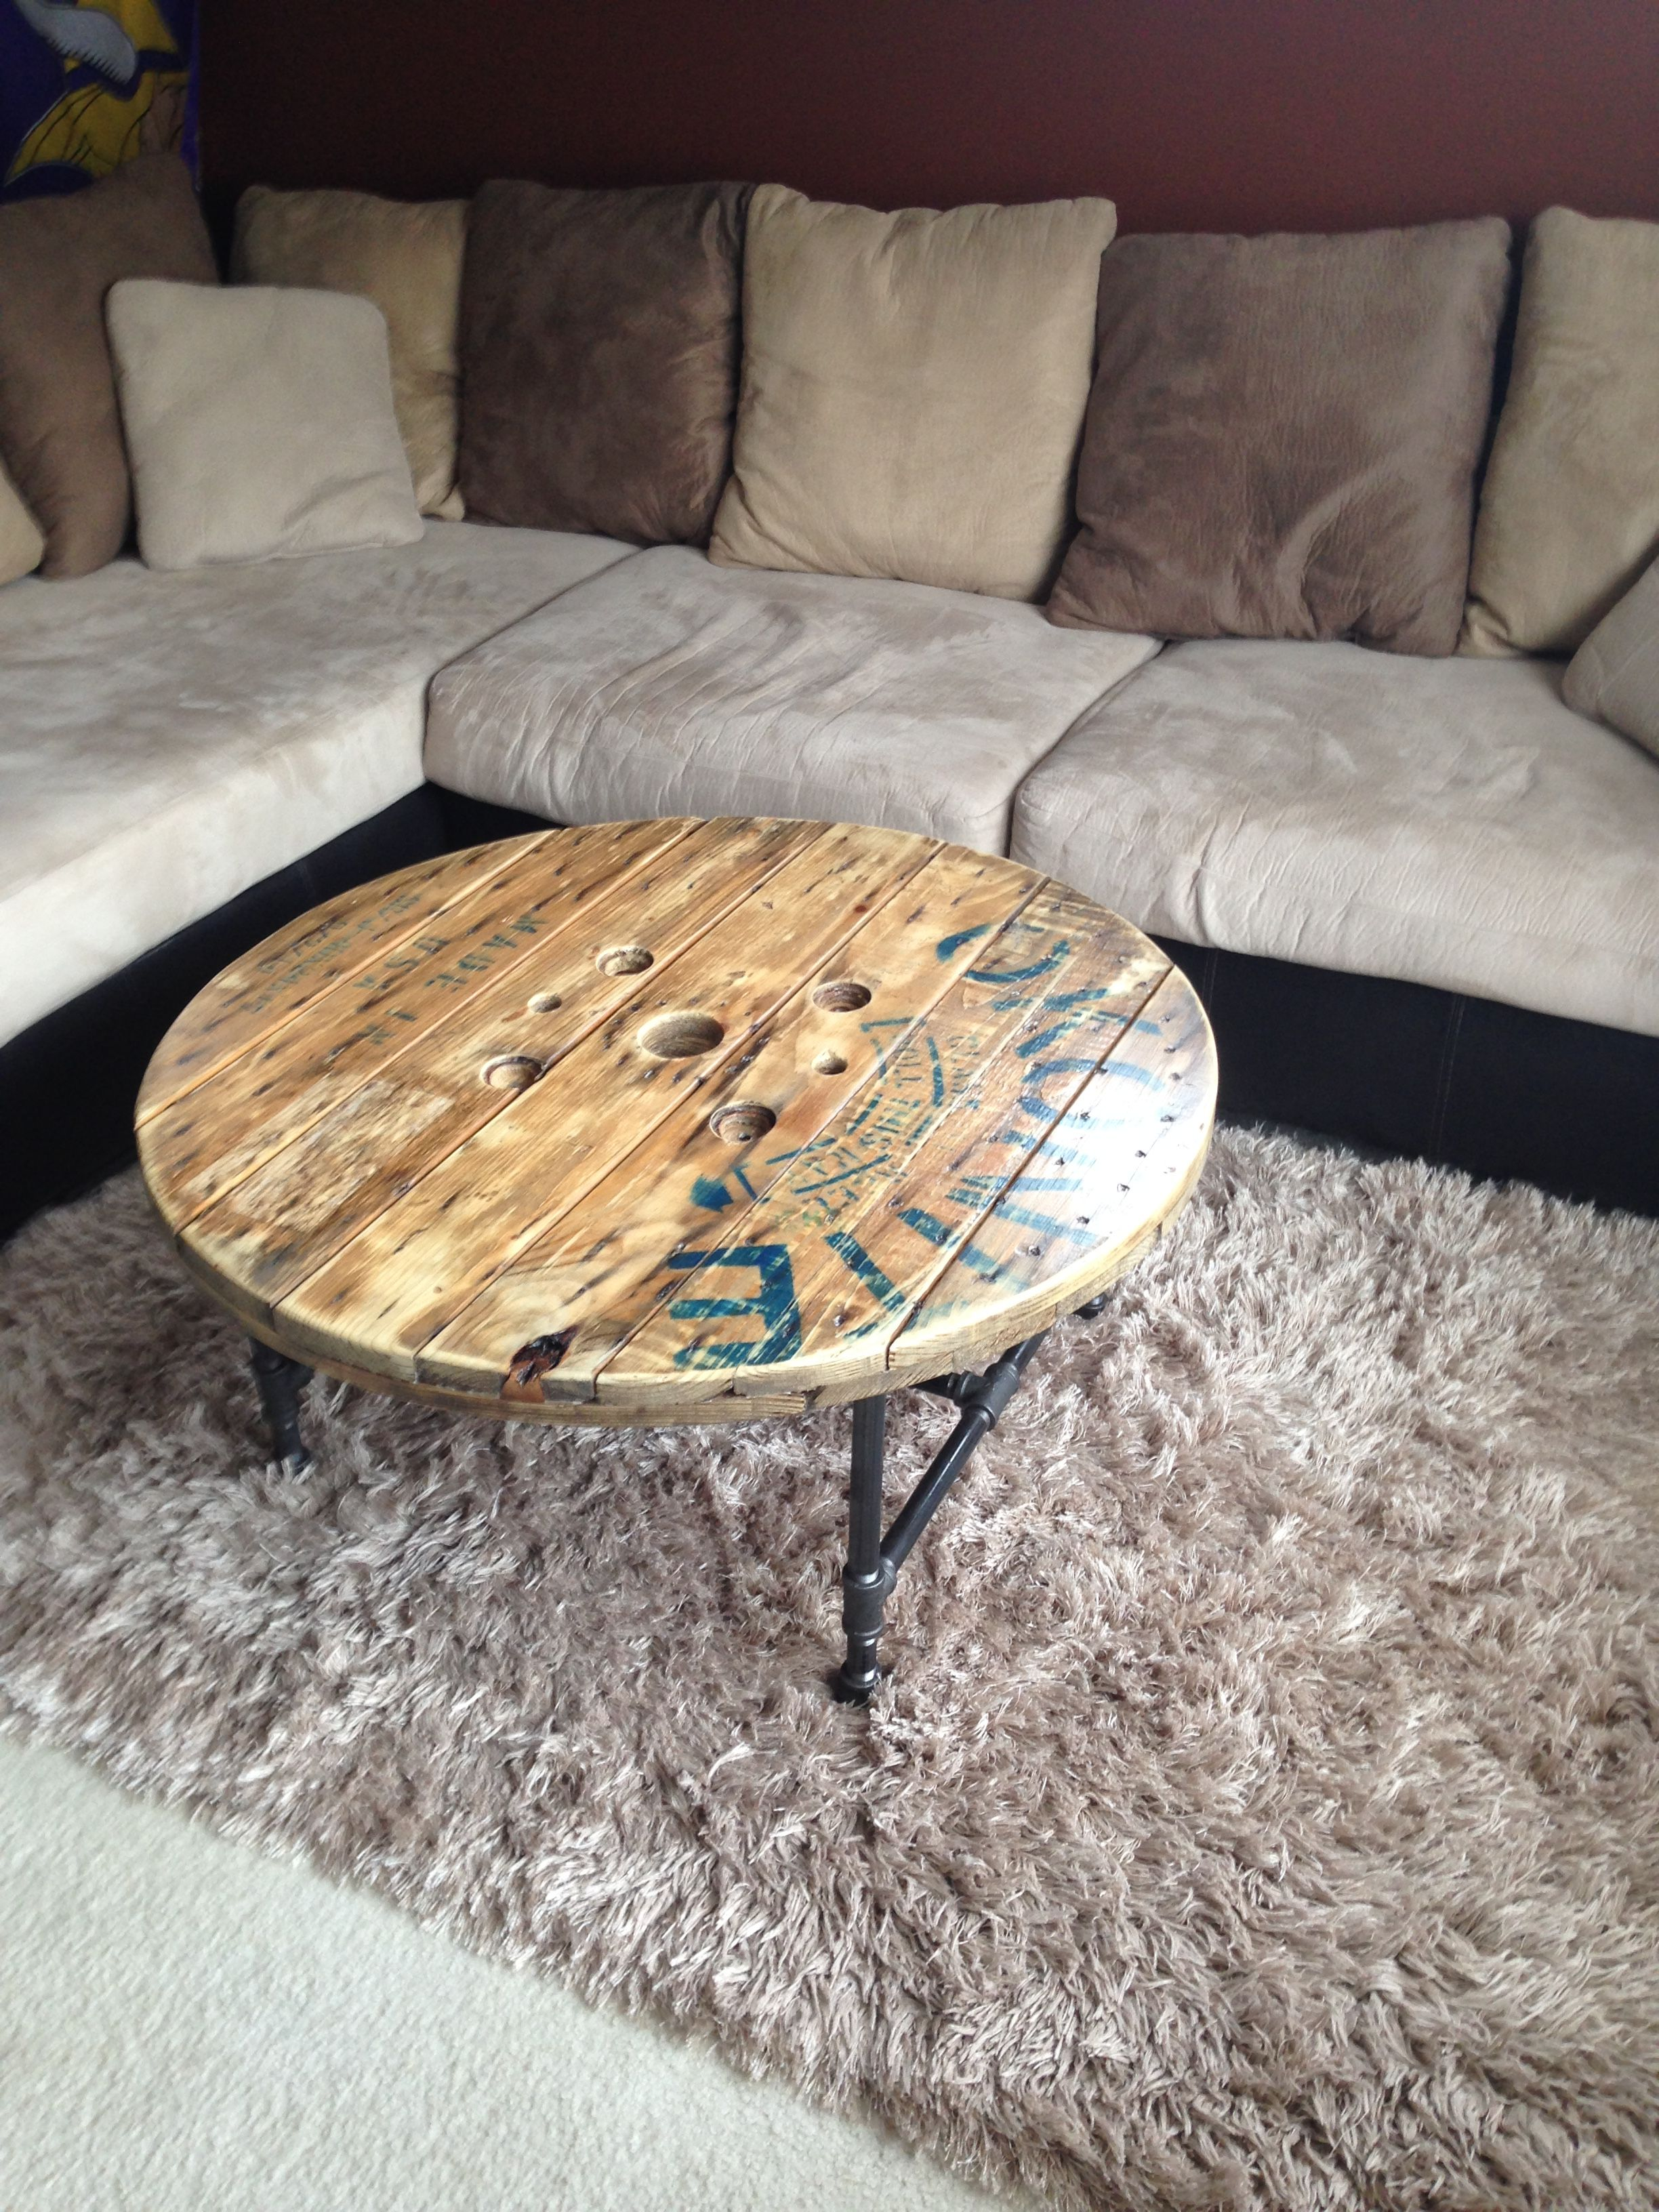 Upcycled wire wood spool turned into gameroom coffee table from